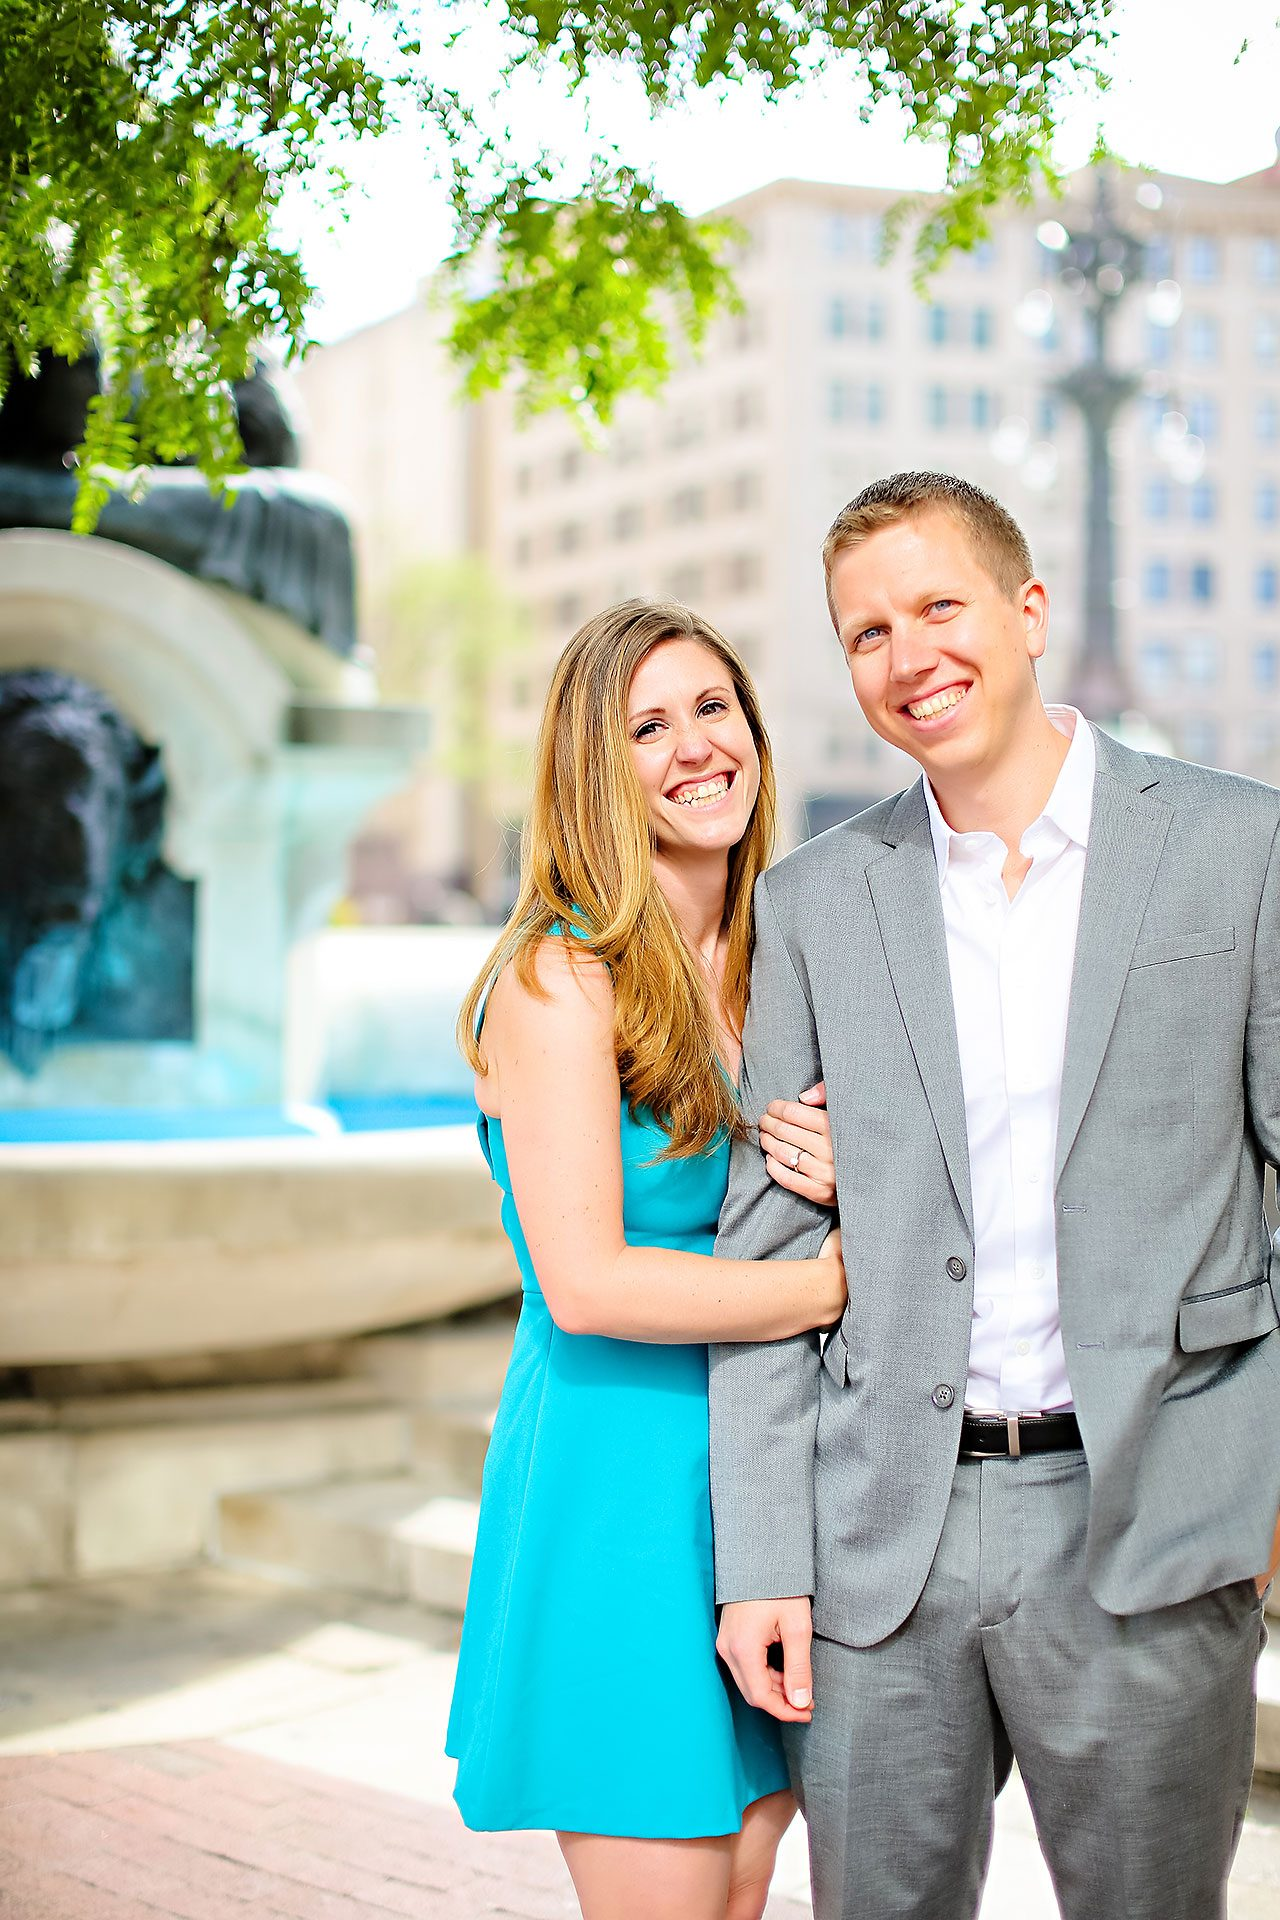 Chelsea Jeff Downtown Indy Engagement Session 088